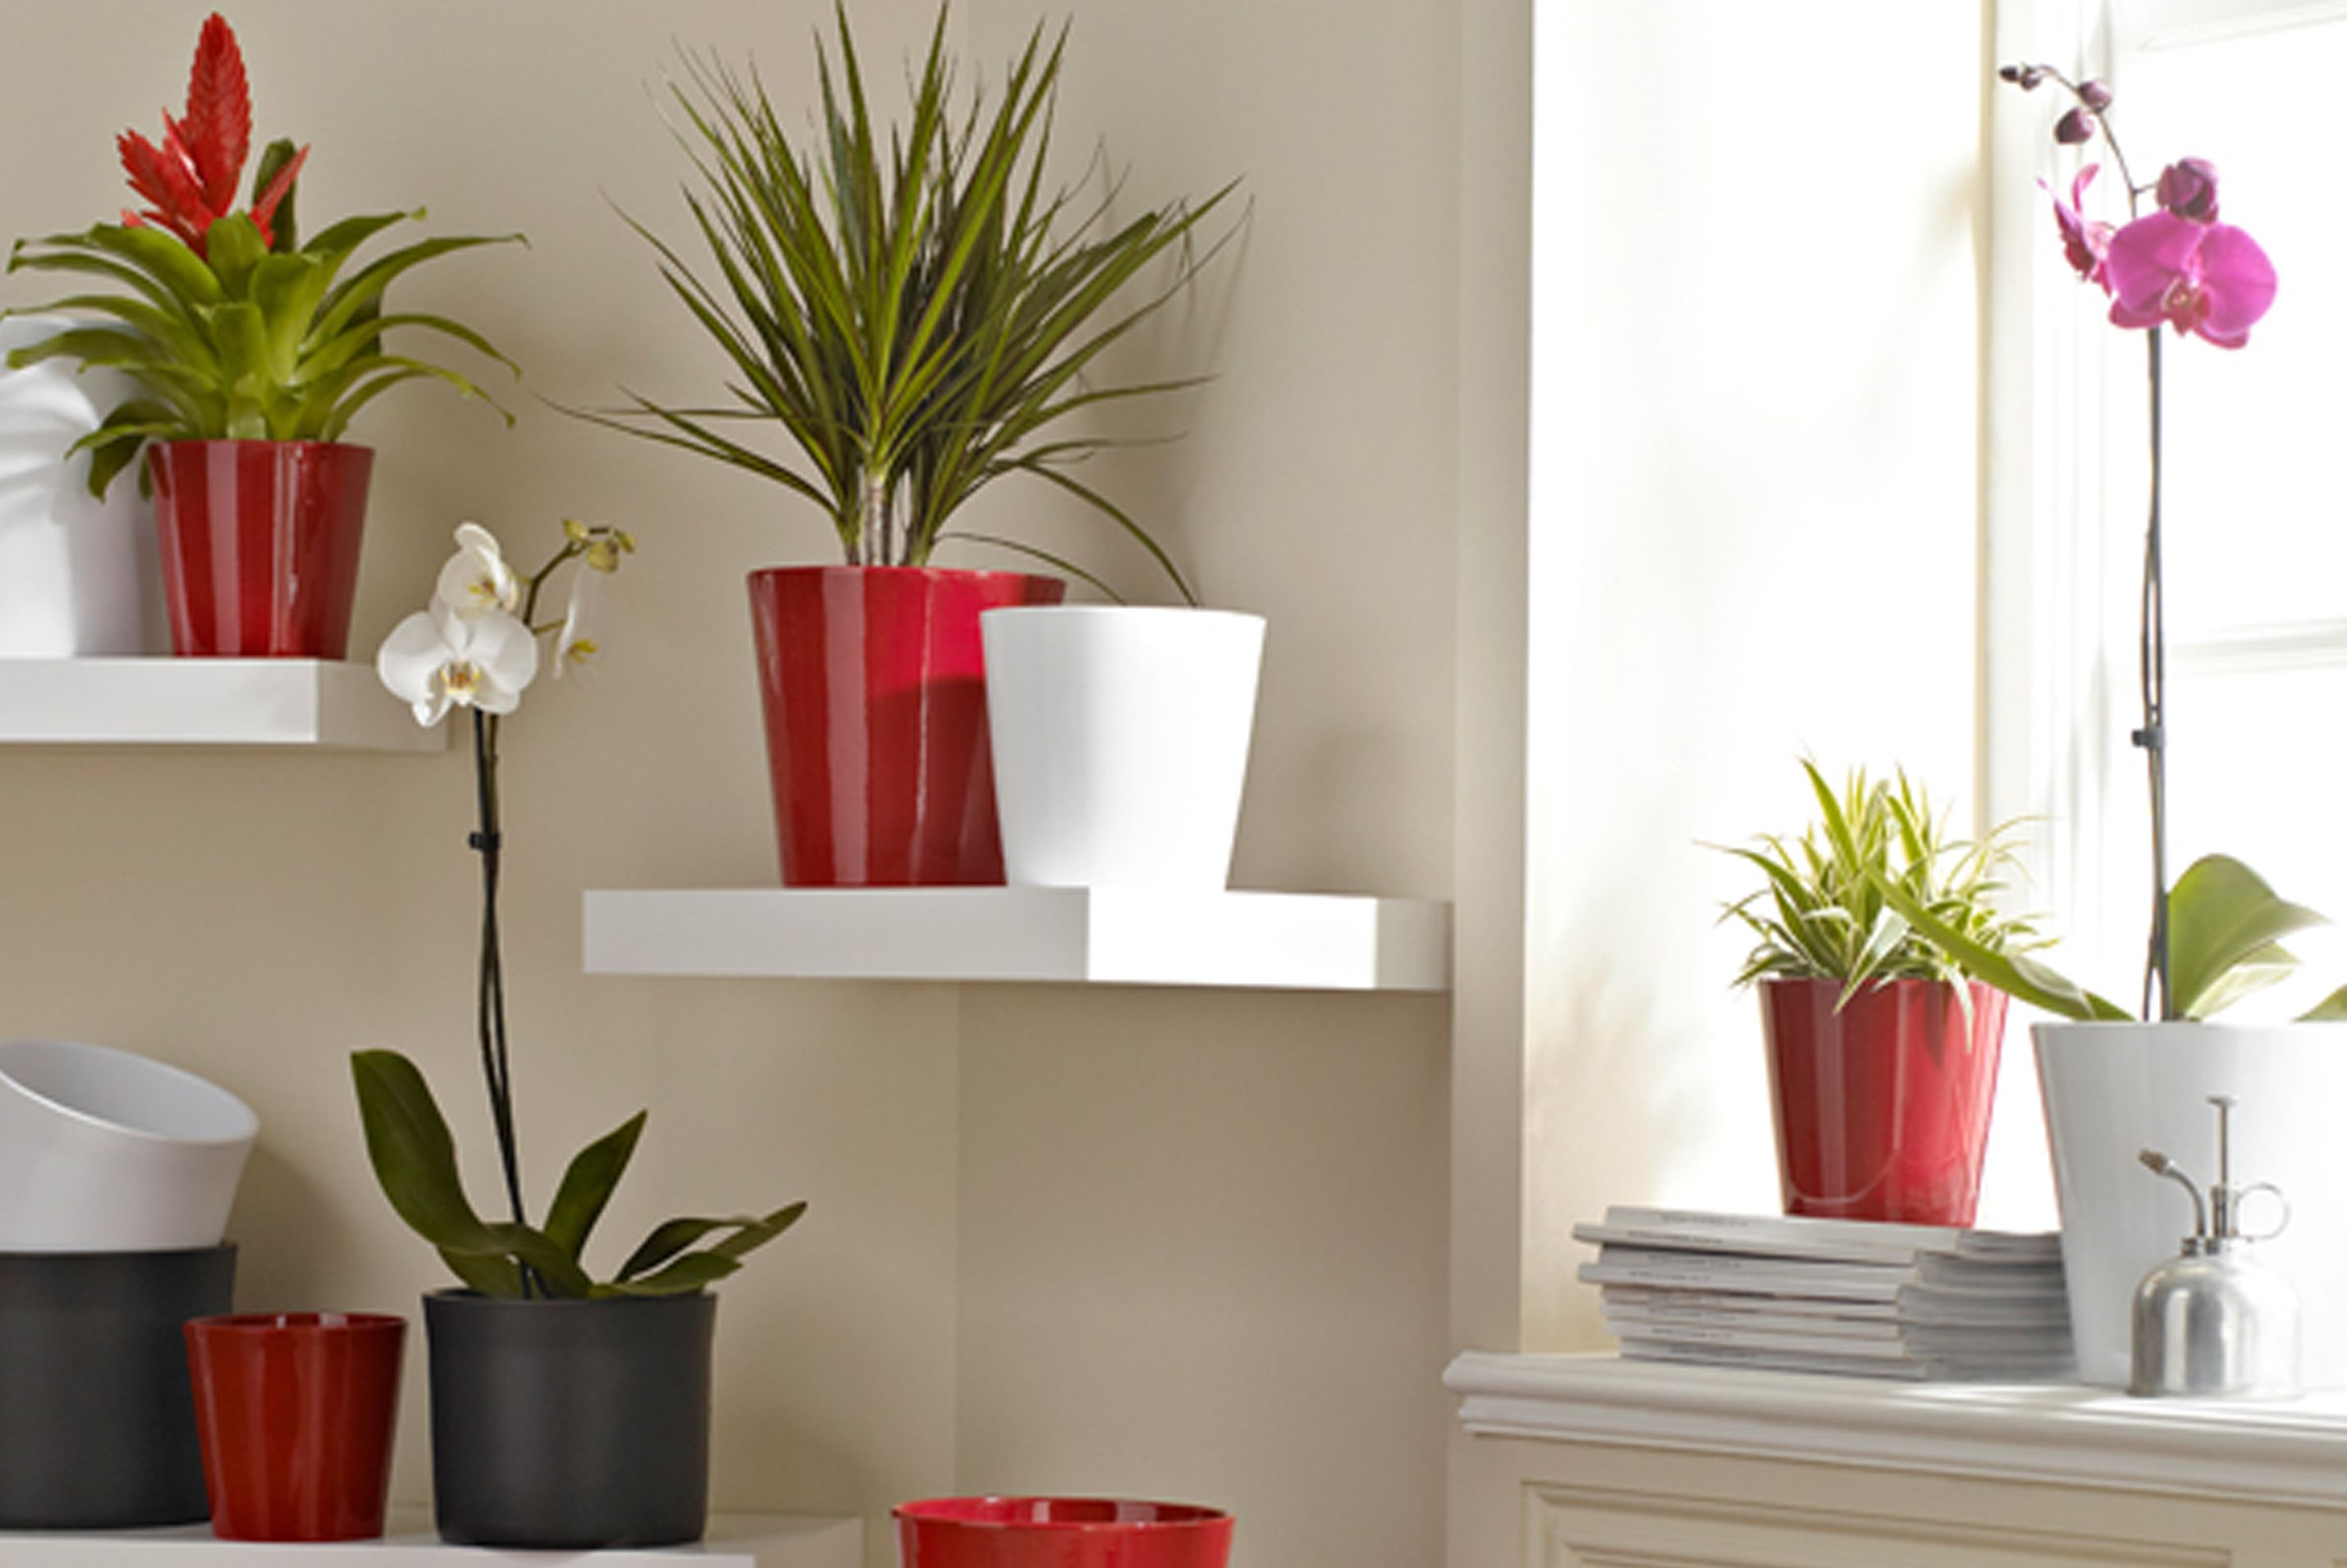 House plant buying guide ideas advice diy at b q for Casas decoradas con plantas naturales